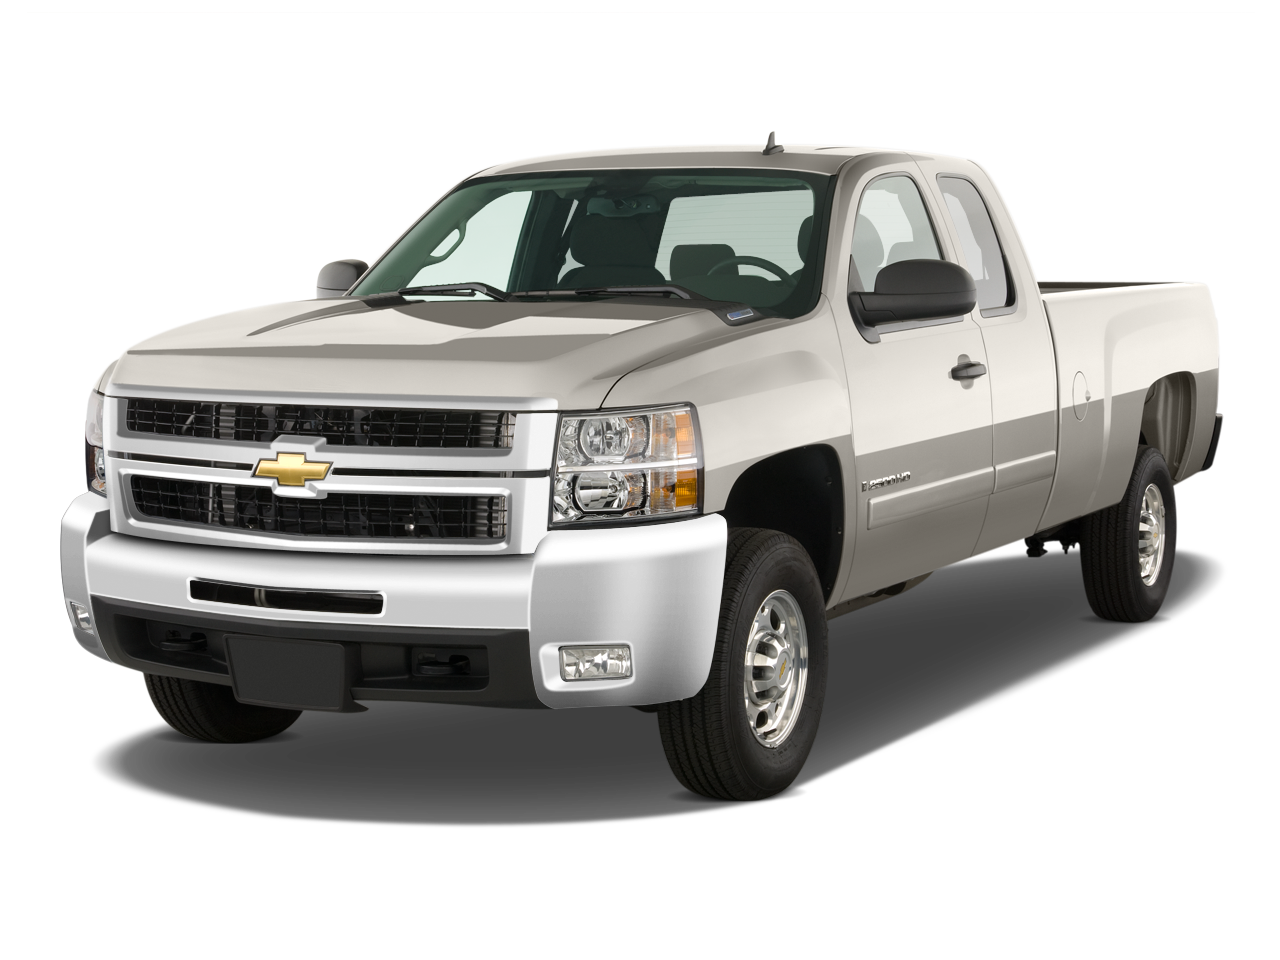 These Retro Themed New Chevy Silverados Are The Coolest Chevrolet Silverado Classic Cars Chevy Chevy Service